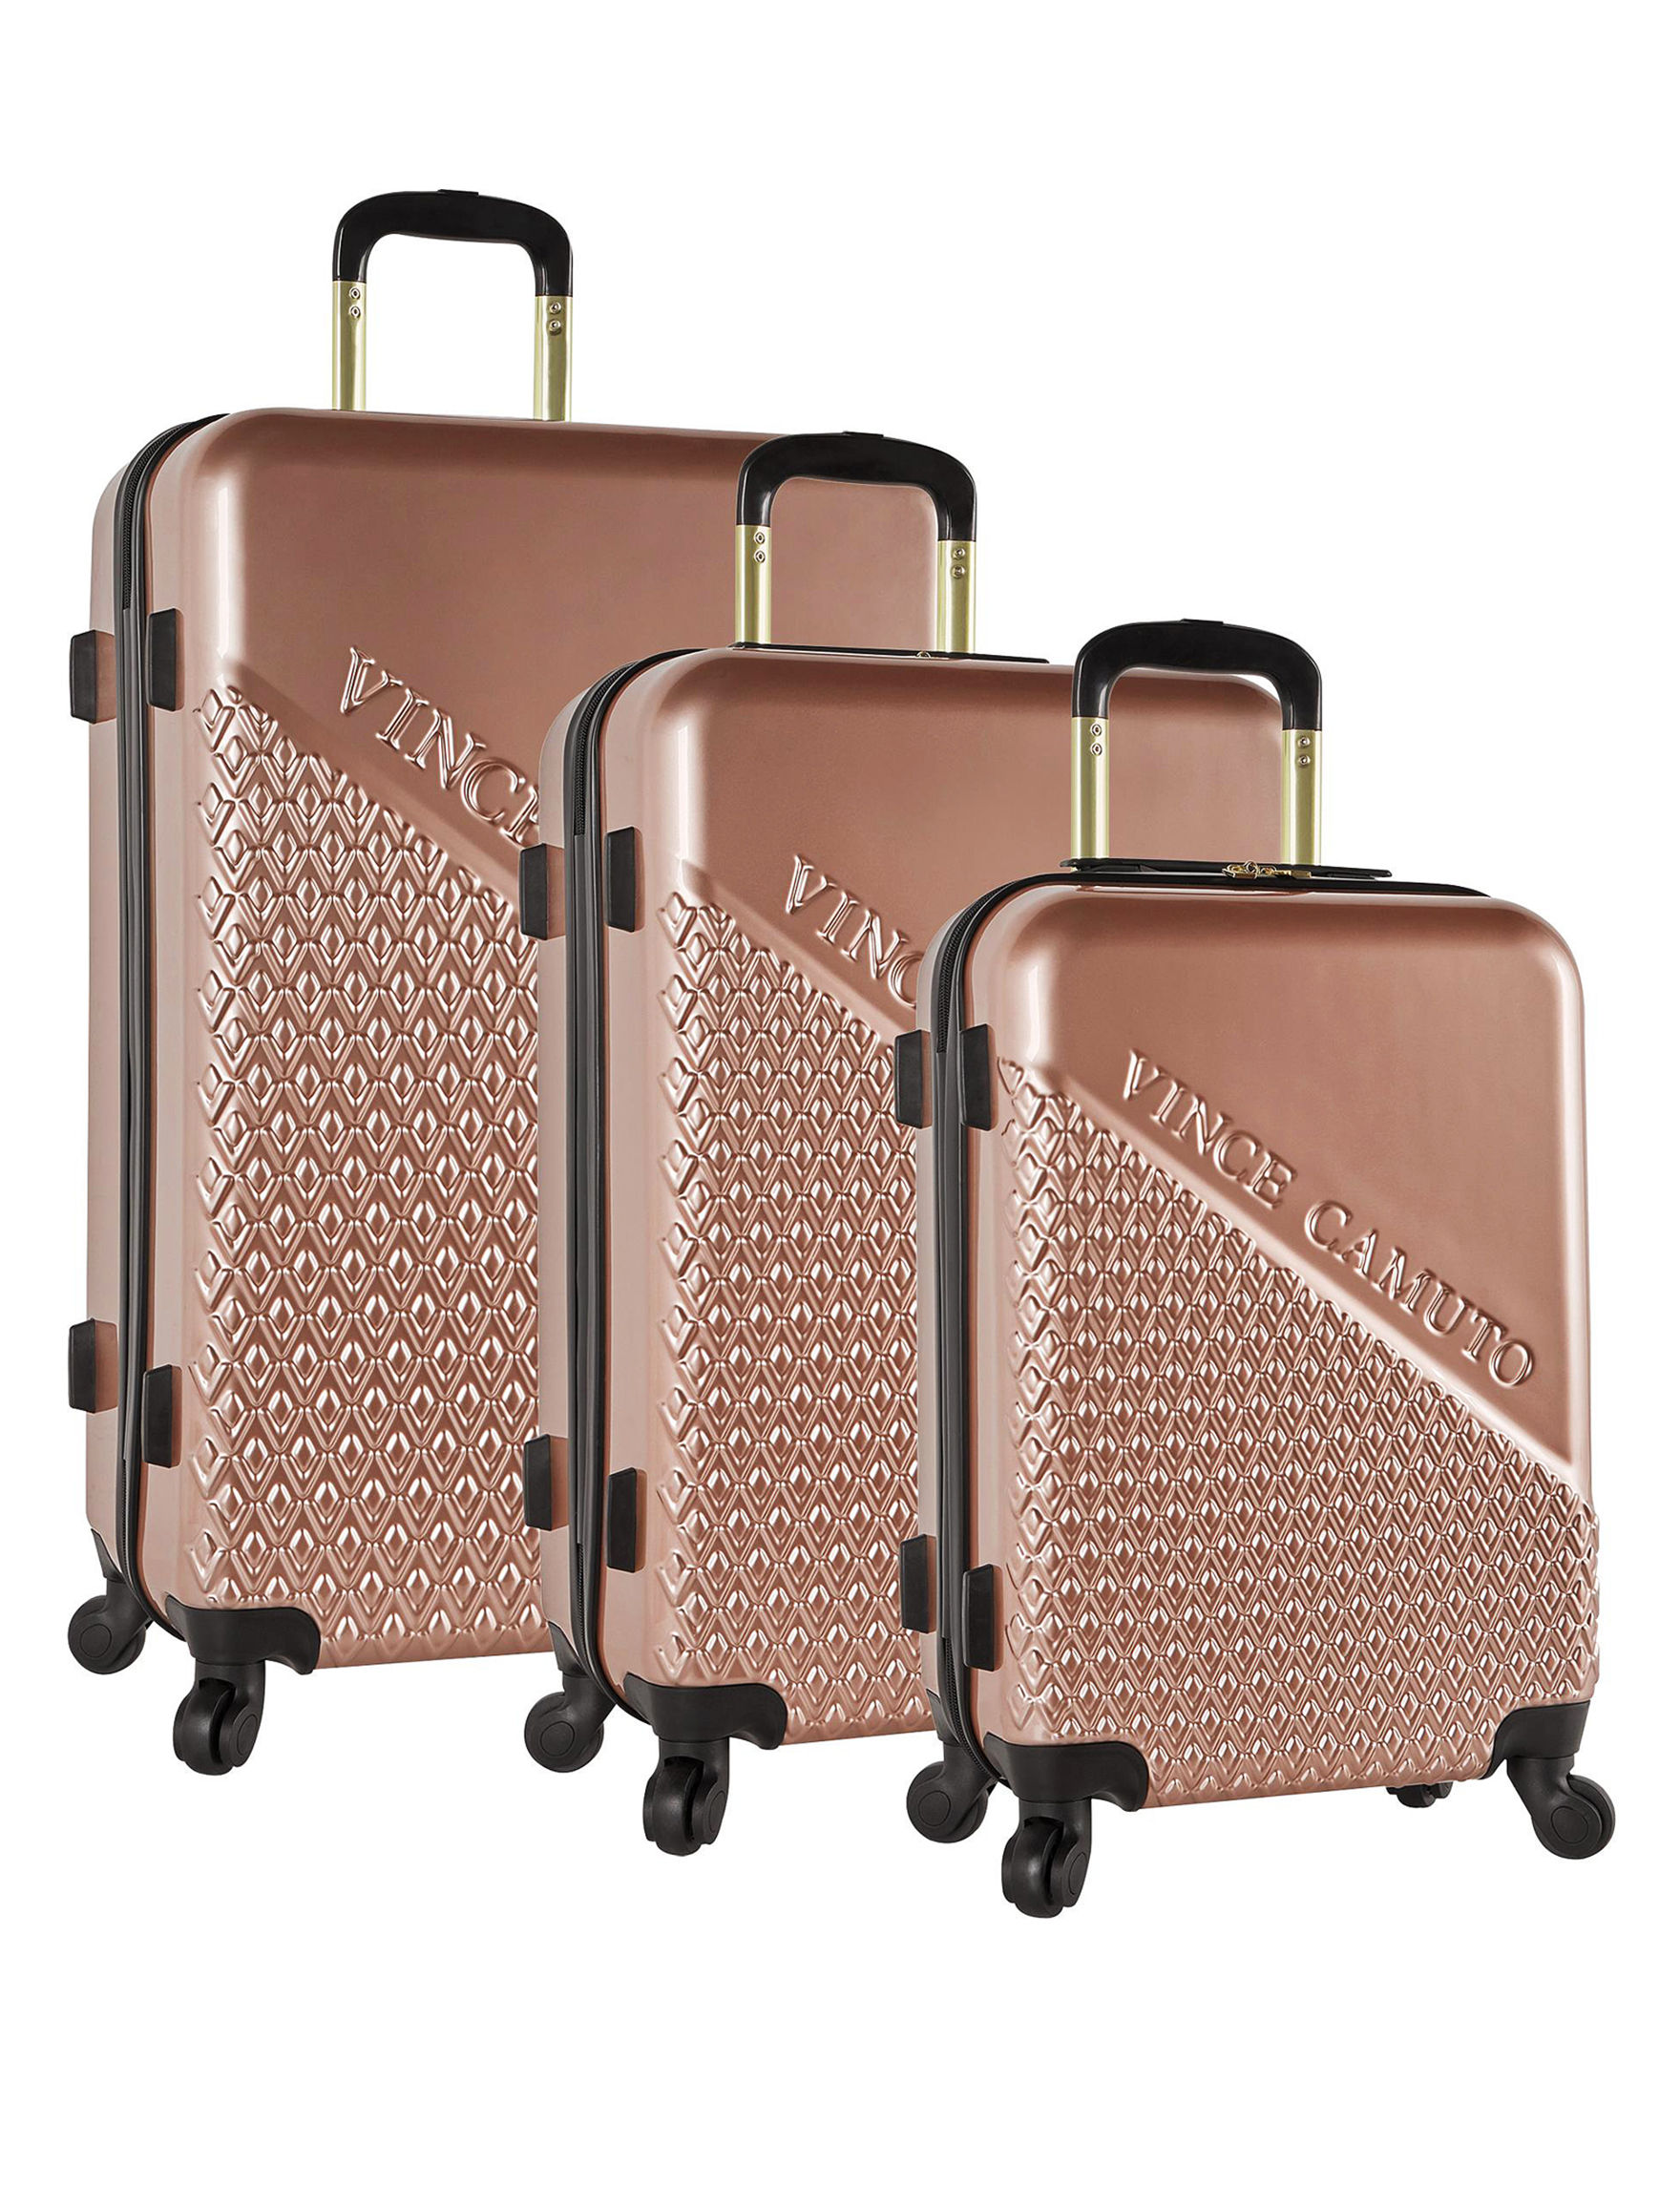 Vince Camuto Rose Gold Hardside Upright Spinners